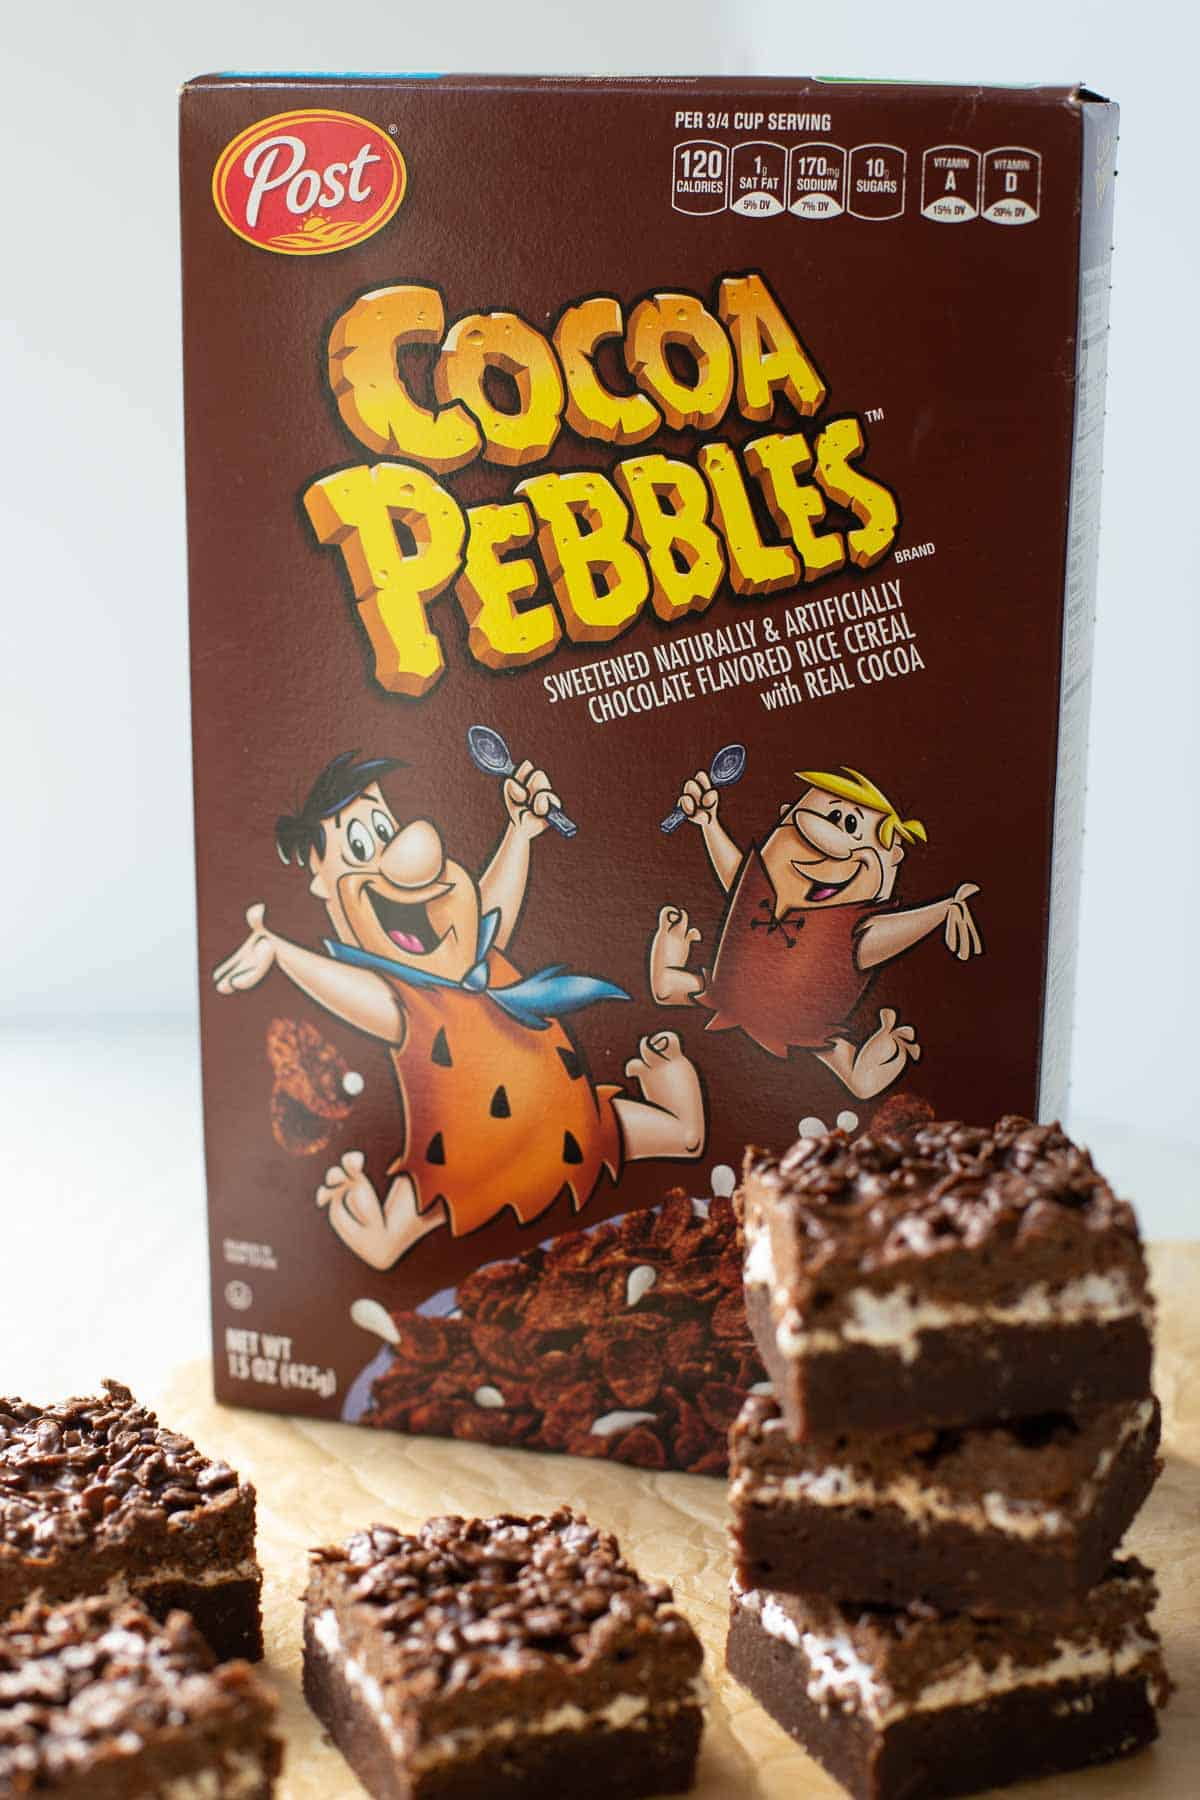 shot of PEBBLES™ cereal box